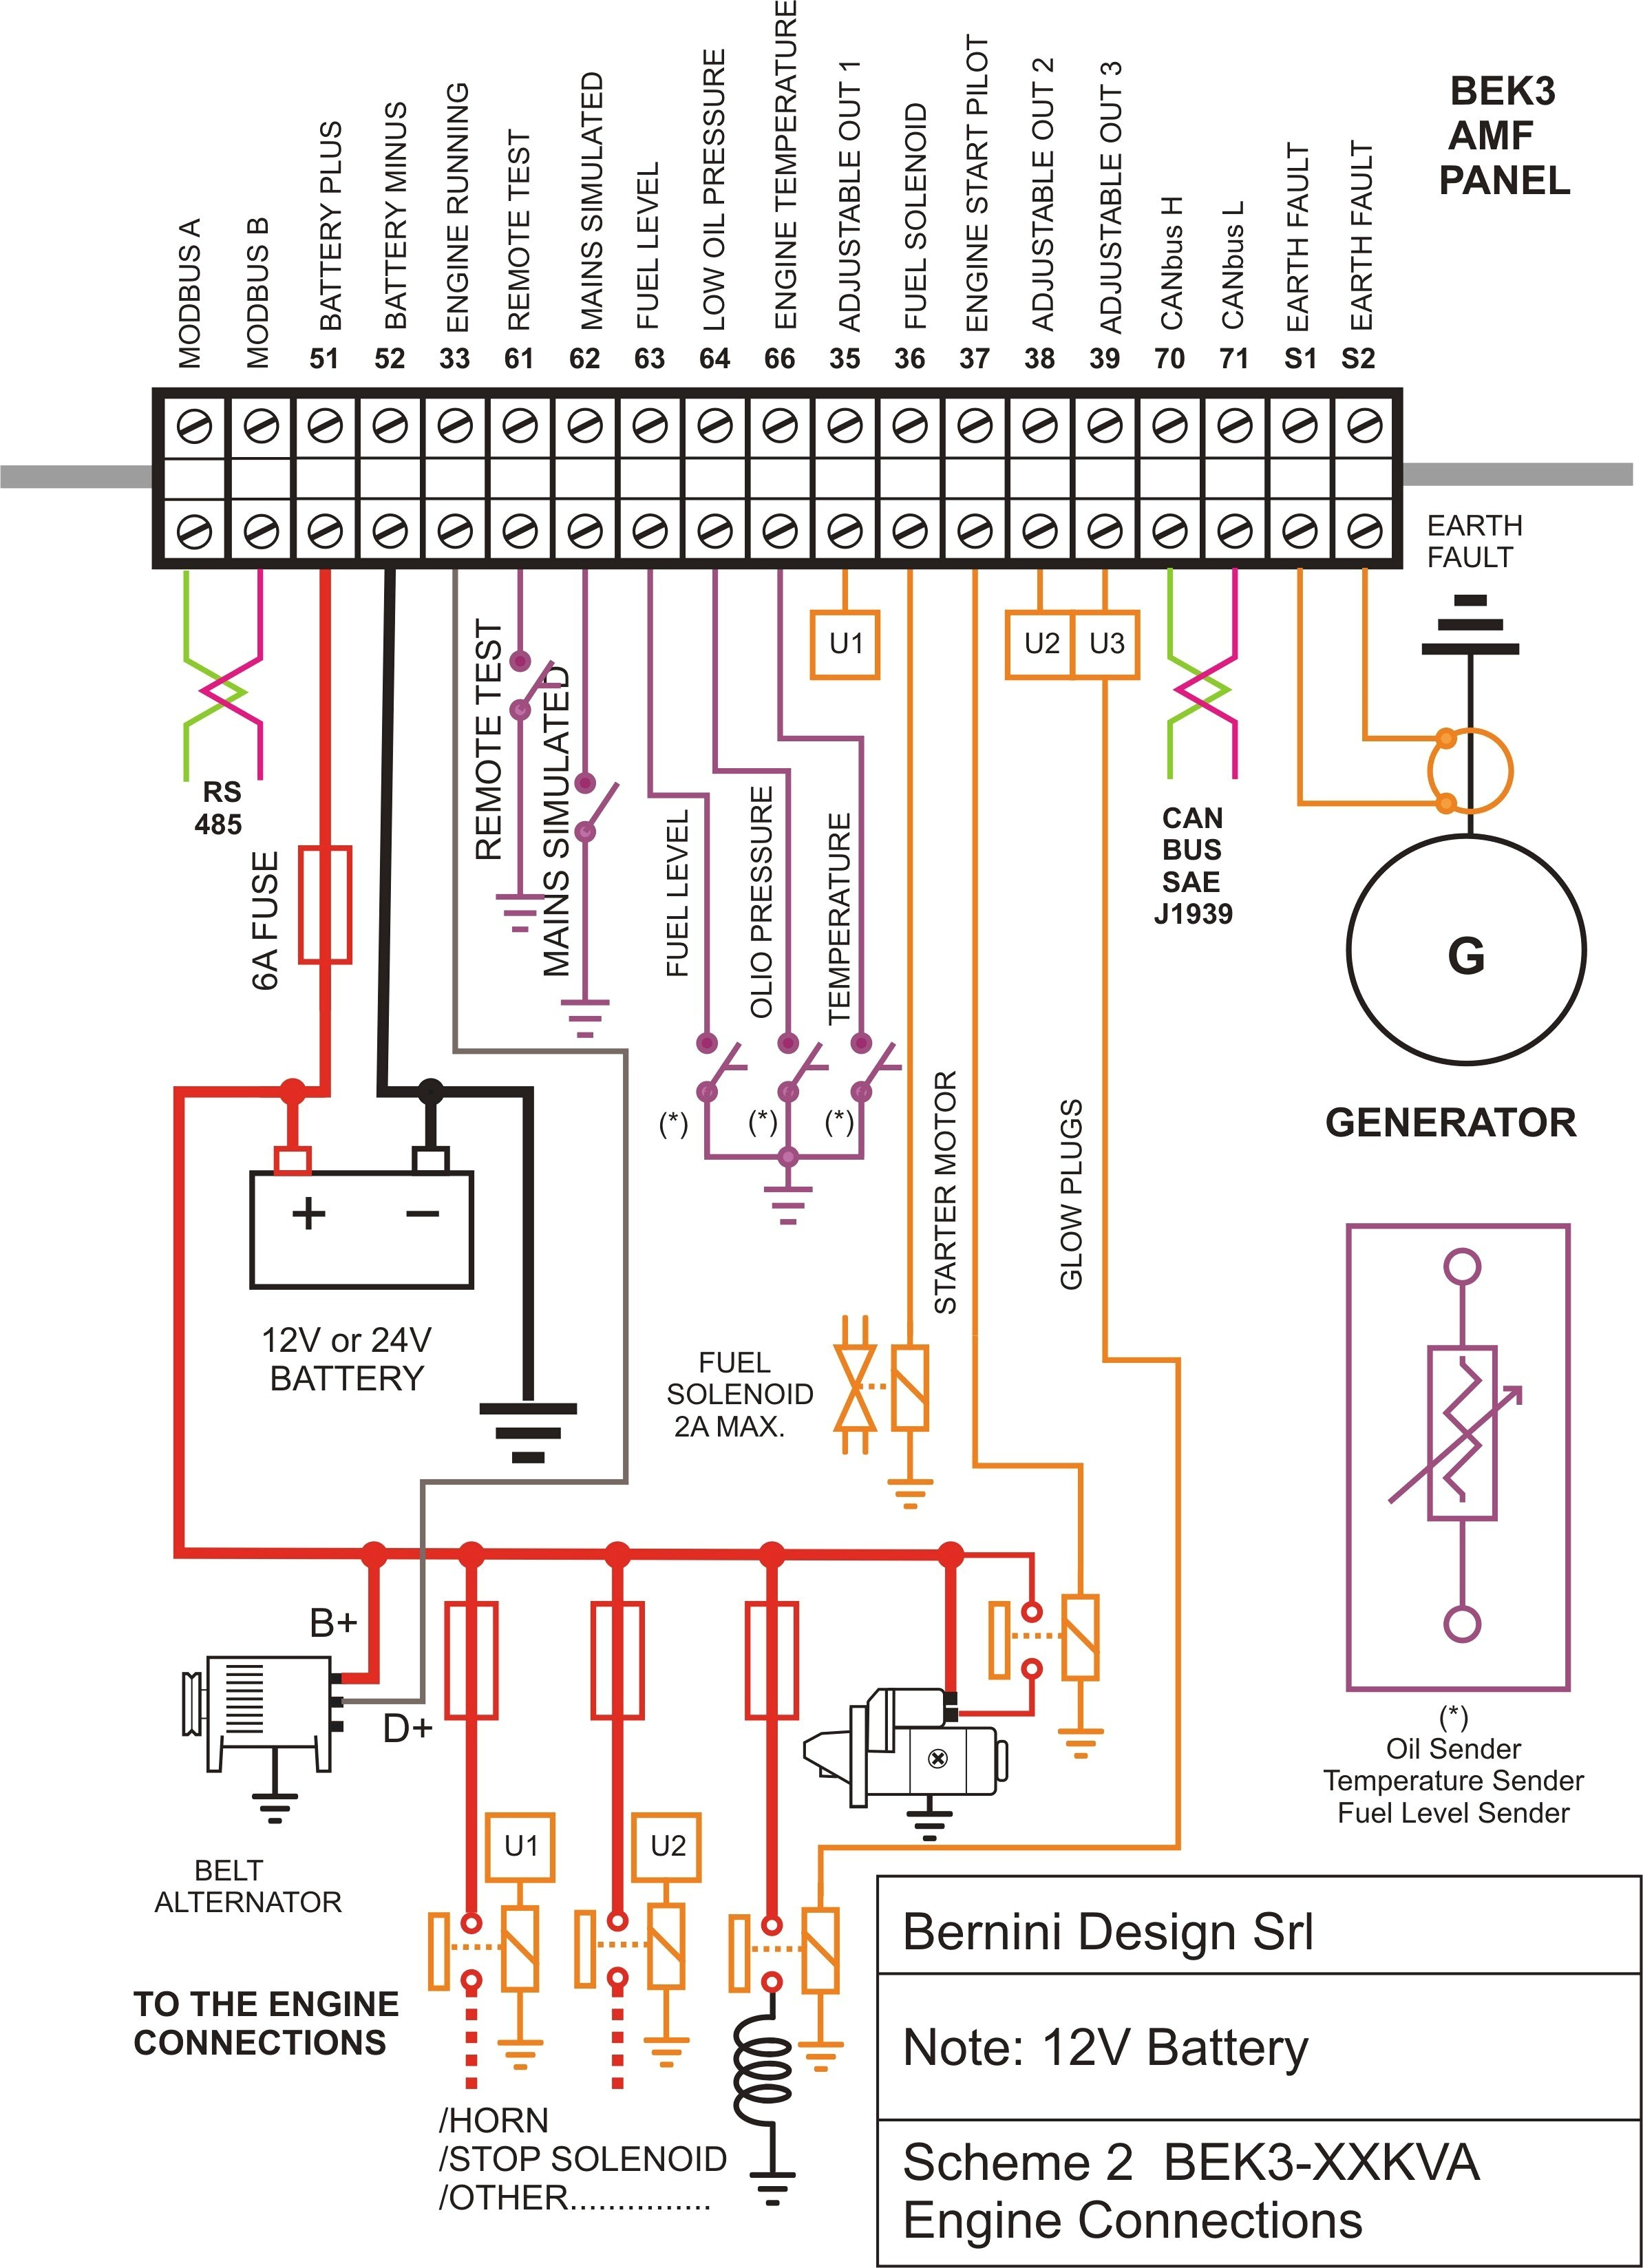 Fuse Panel Wiring Diagram Wiring Diagram Perfomance House Fuse Box Wiring Diagram